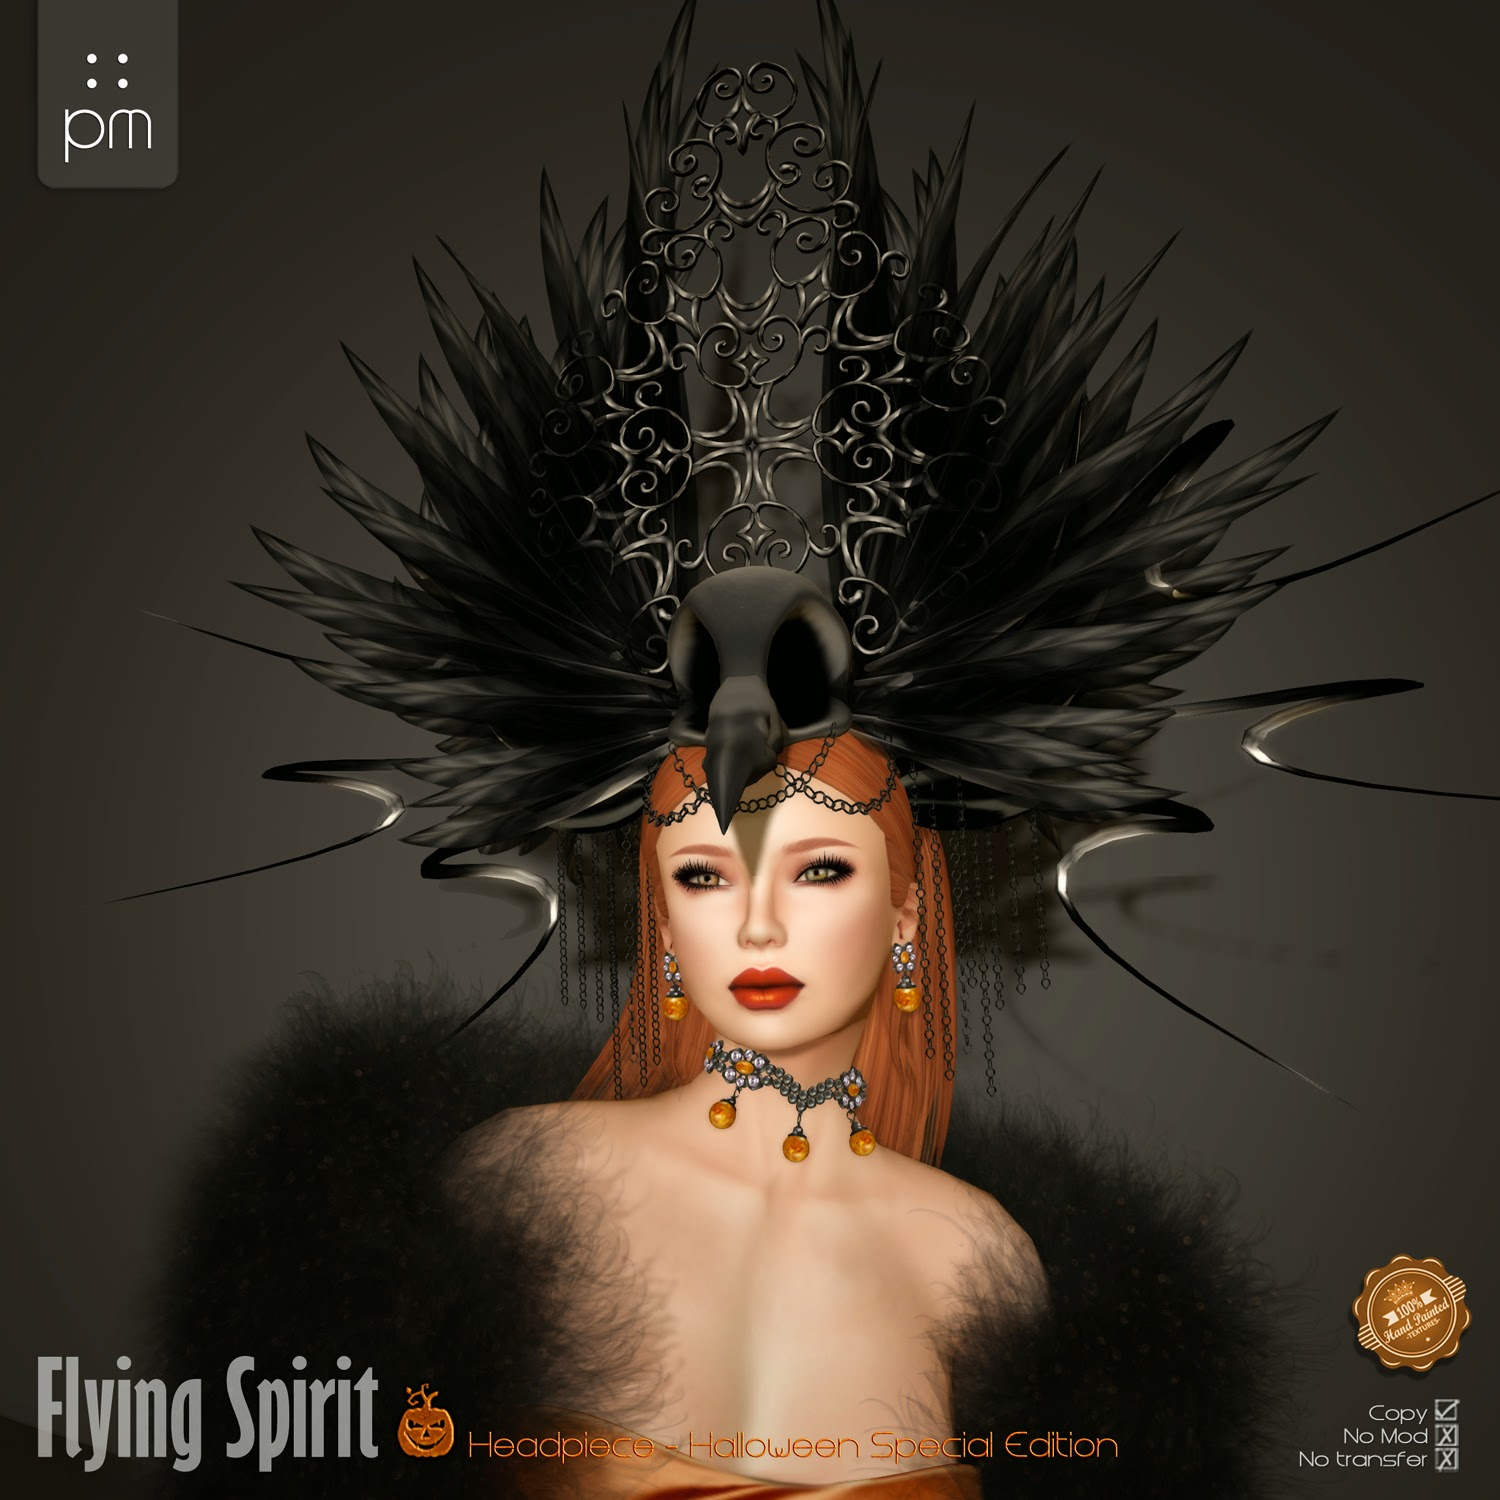 https://marketplace.secondlife.com/p/PM-Flying-Spirit-Headpiece-Halloween-Special/6517766